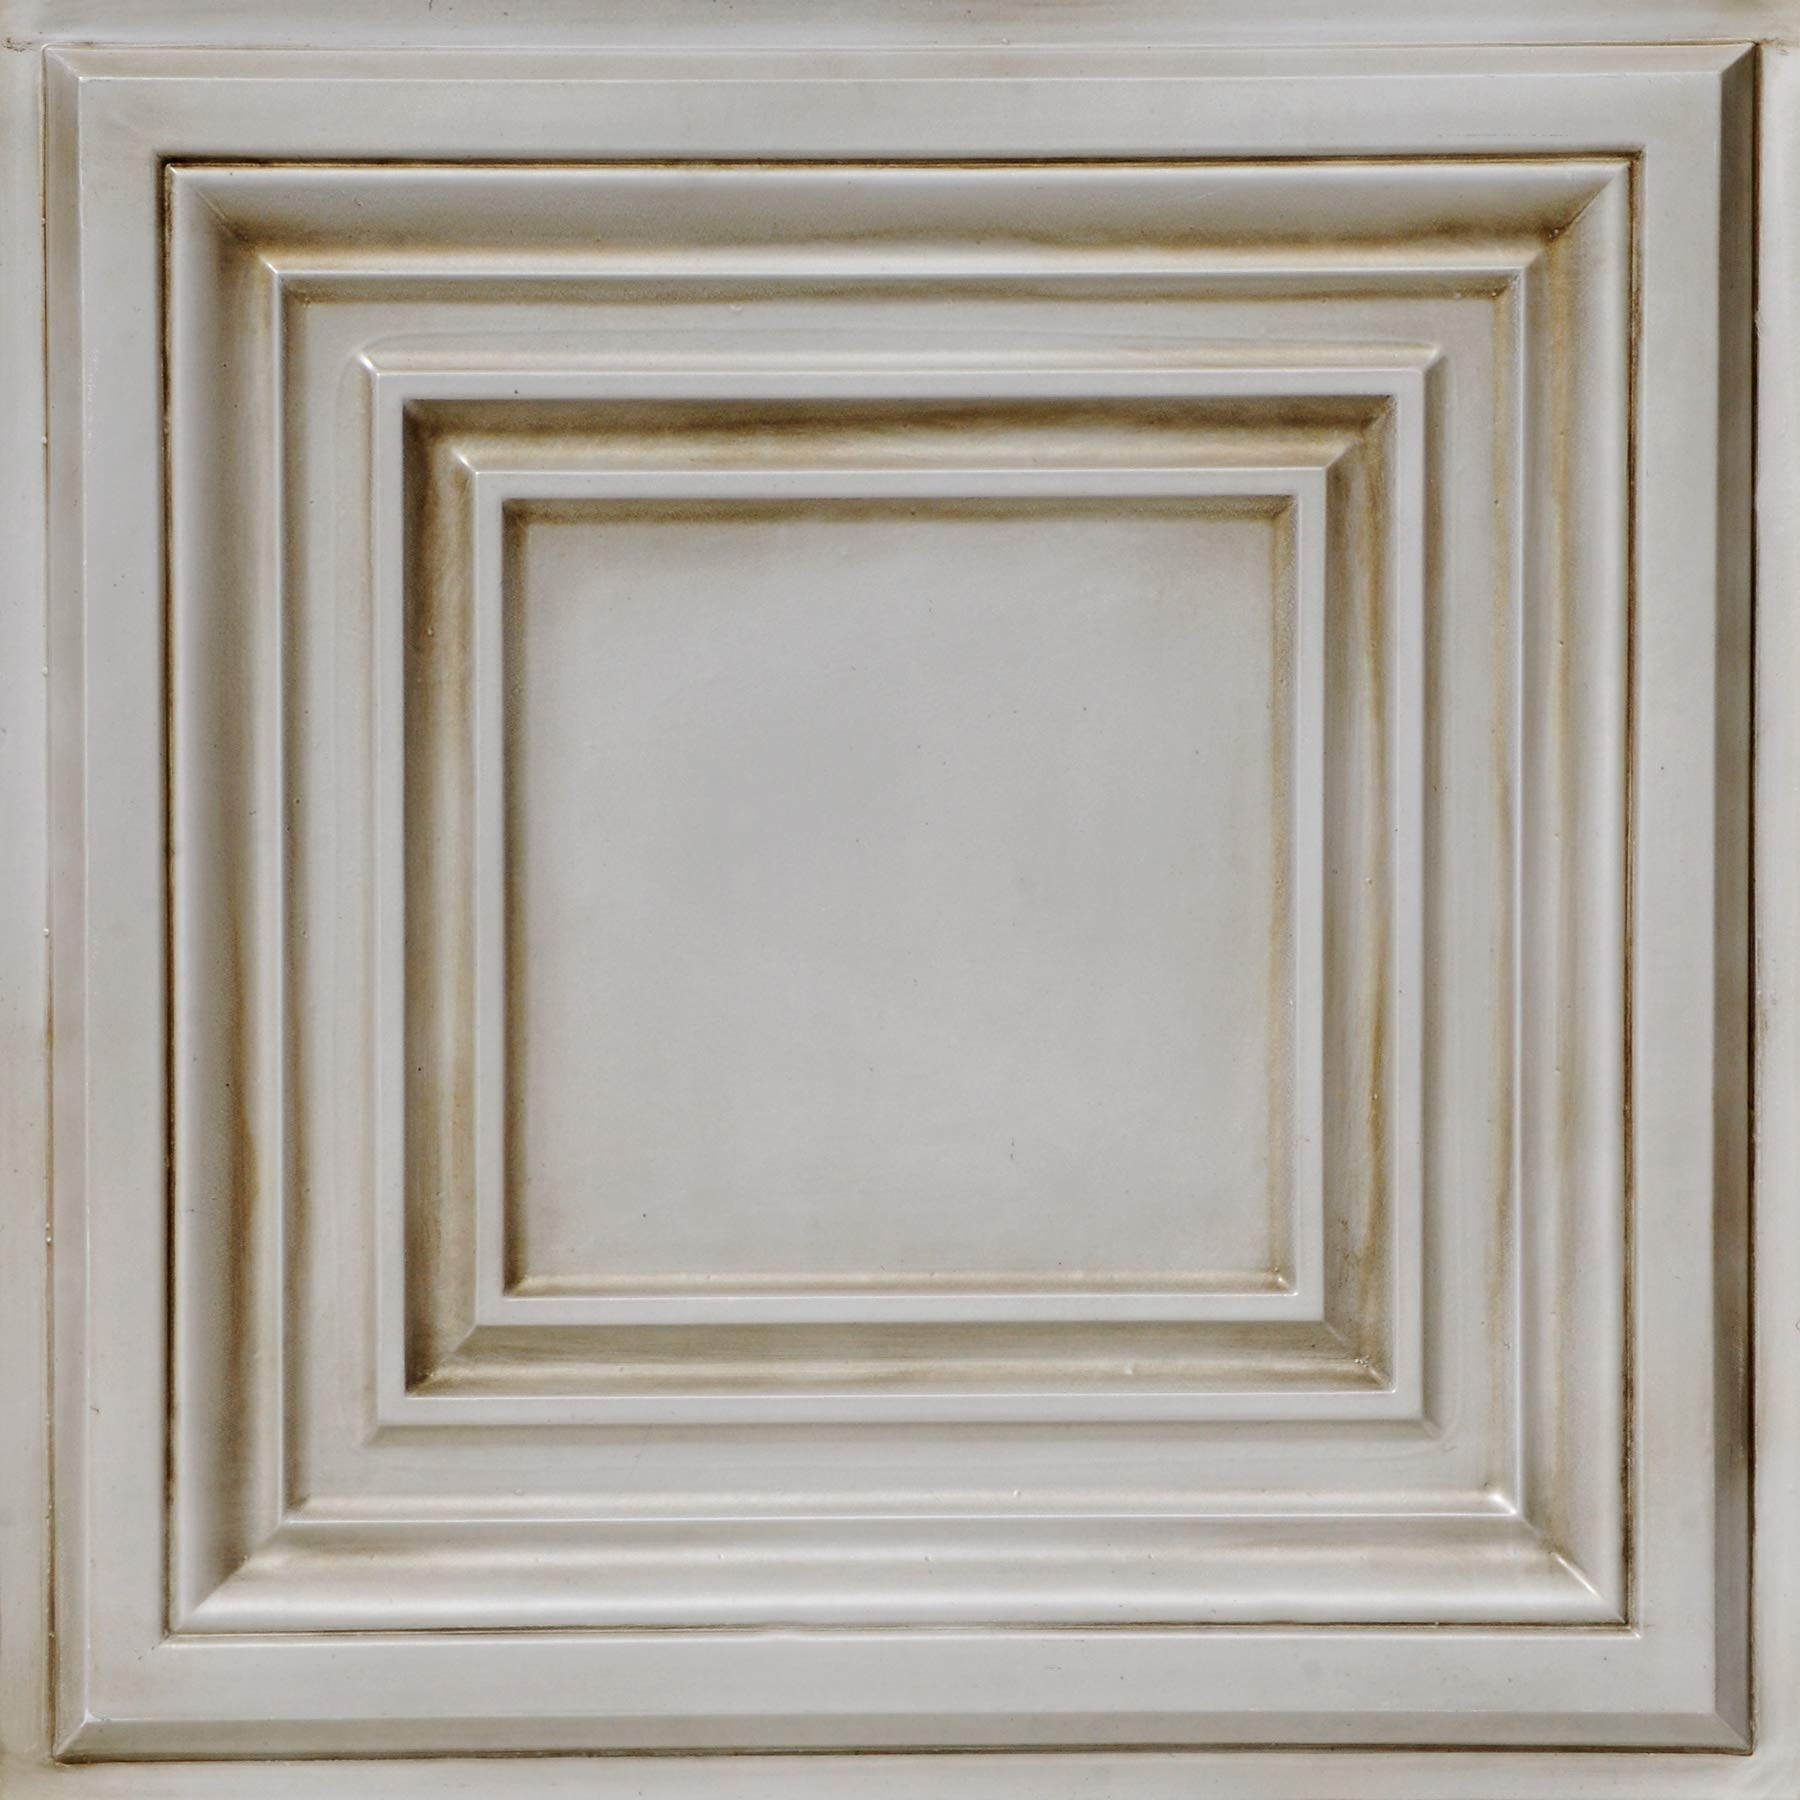 From Plain To Beautiful In Hours DCT05aw-24x24-25 Washington Square Ceiling Tile Antique White 25